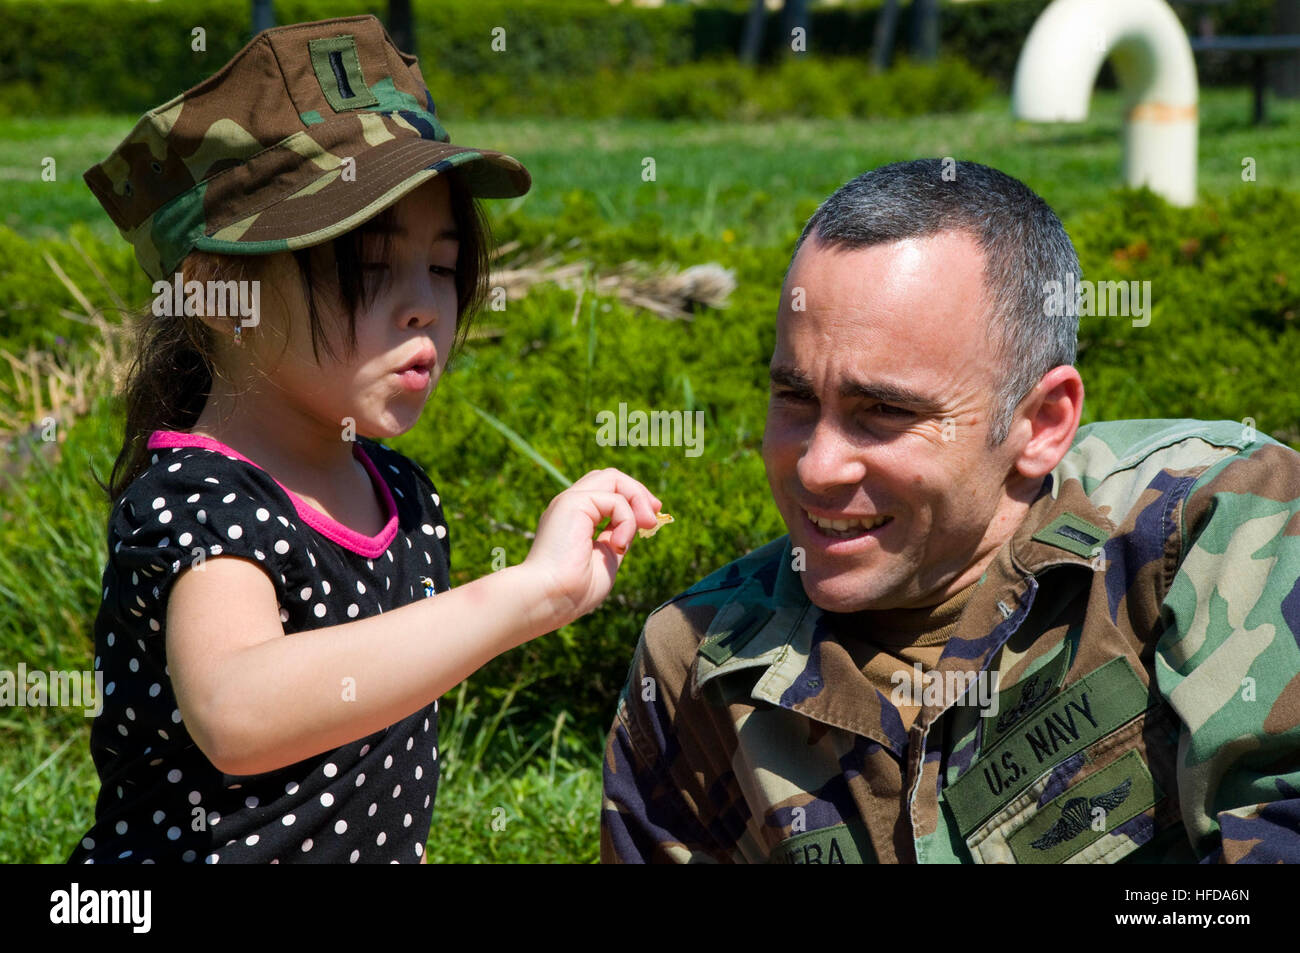 Lt. j.g. Angel Olivera spends time with his daughter during a 'Month of the Military Child' event at Naval - Stock Image